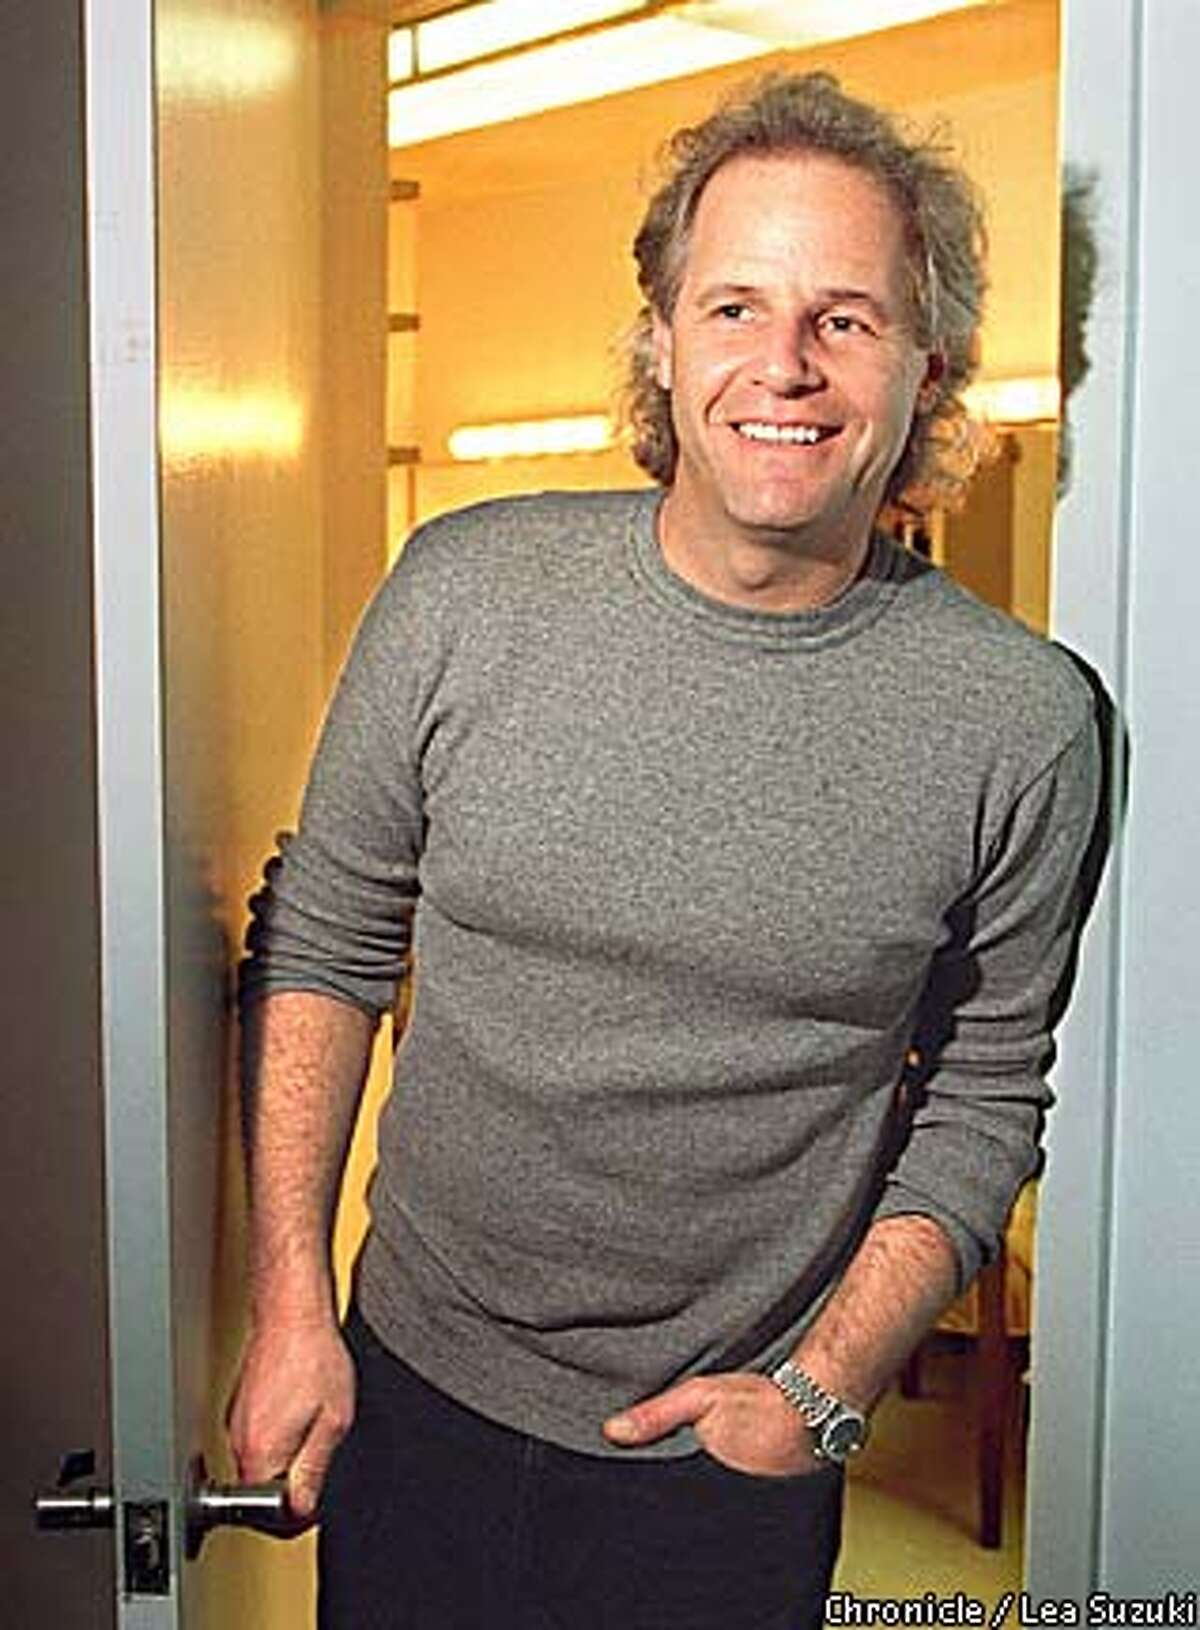 Chris Carter says he'll try to wrap up the series' many loose ends. Chronicle photo, 1996, by Lea Suzuki